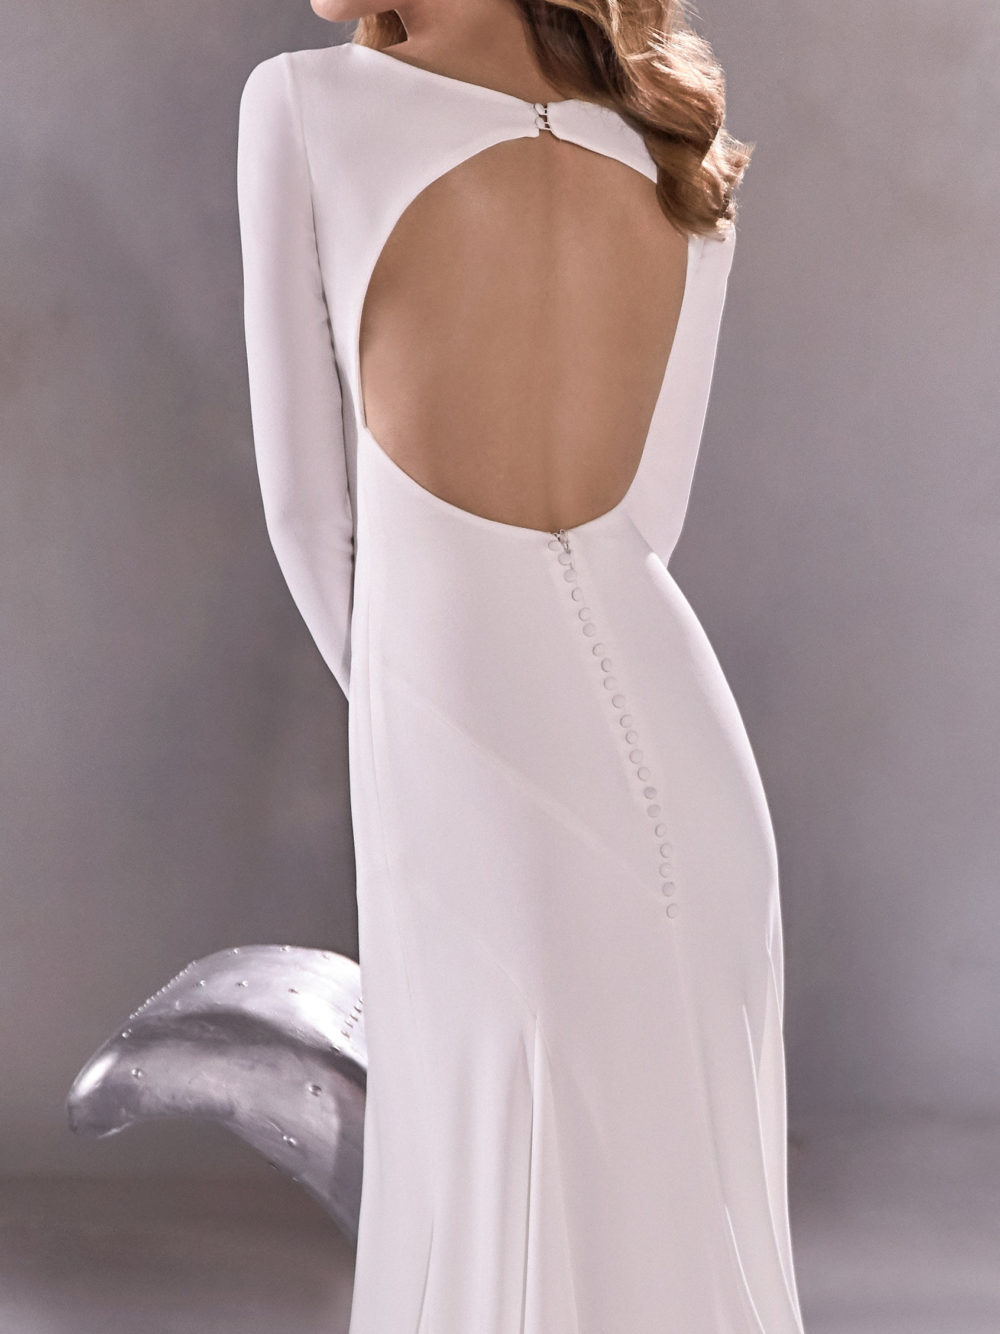 Pronovias Star Moon River Wedding Gown Dress 2020 Atelier Collection back